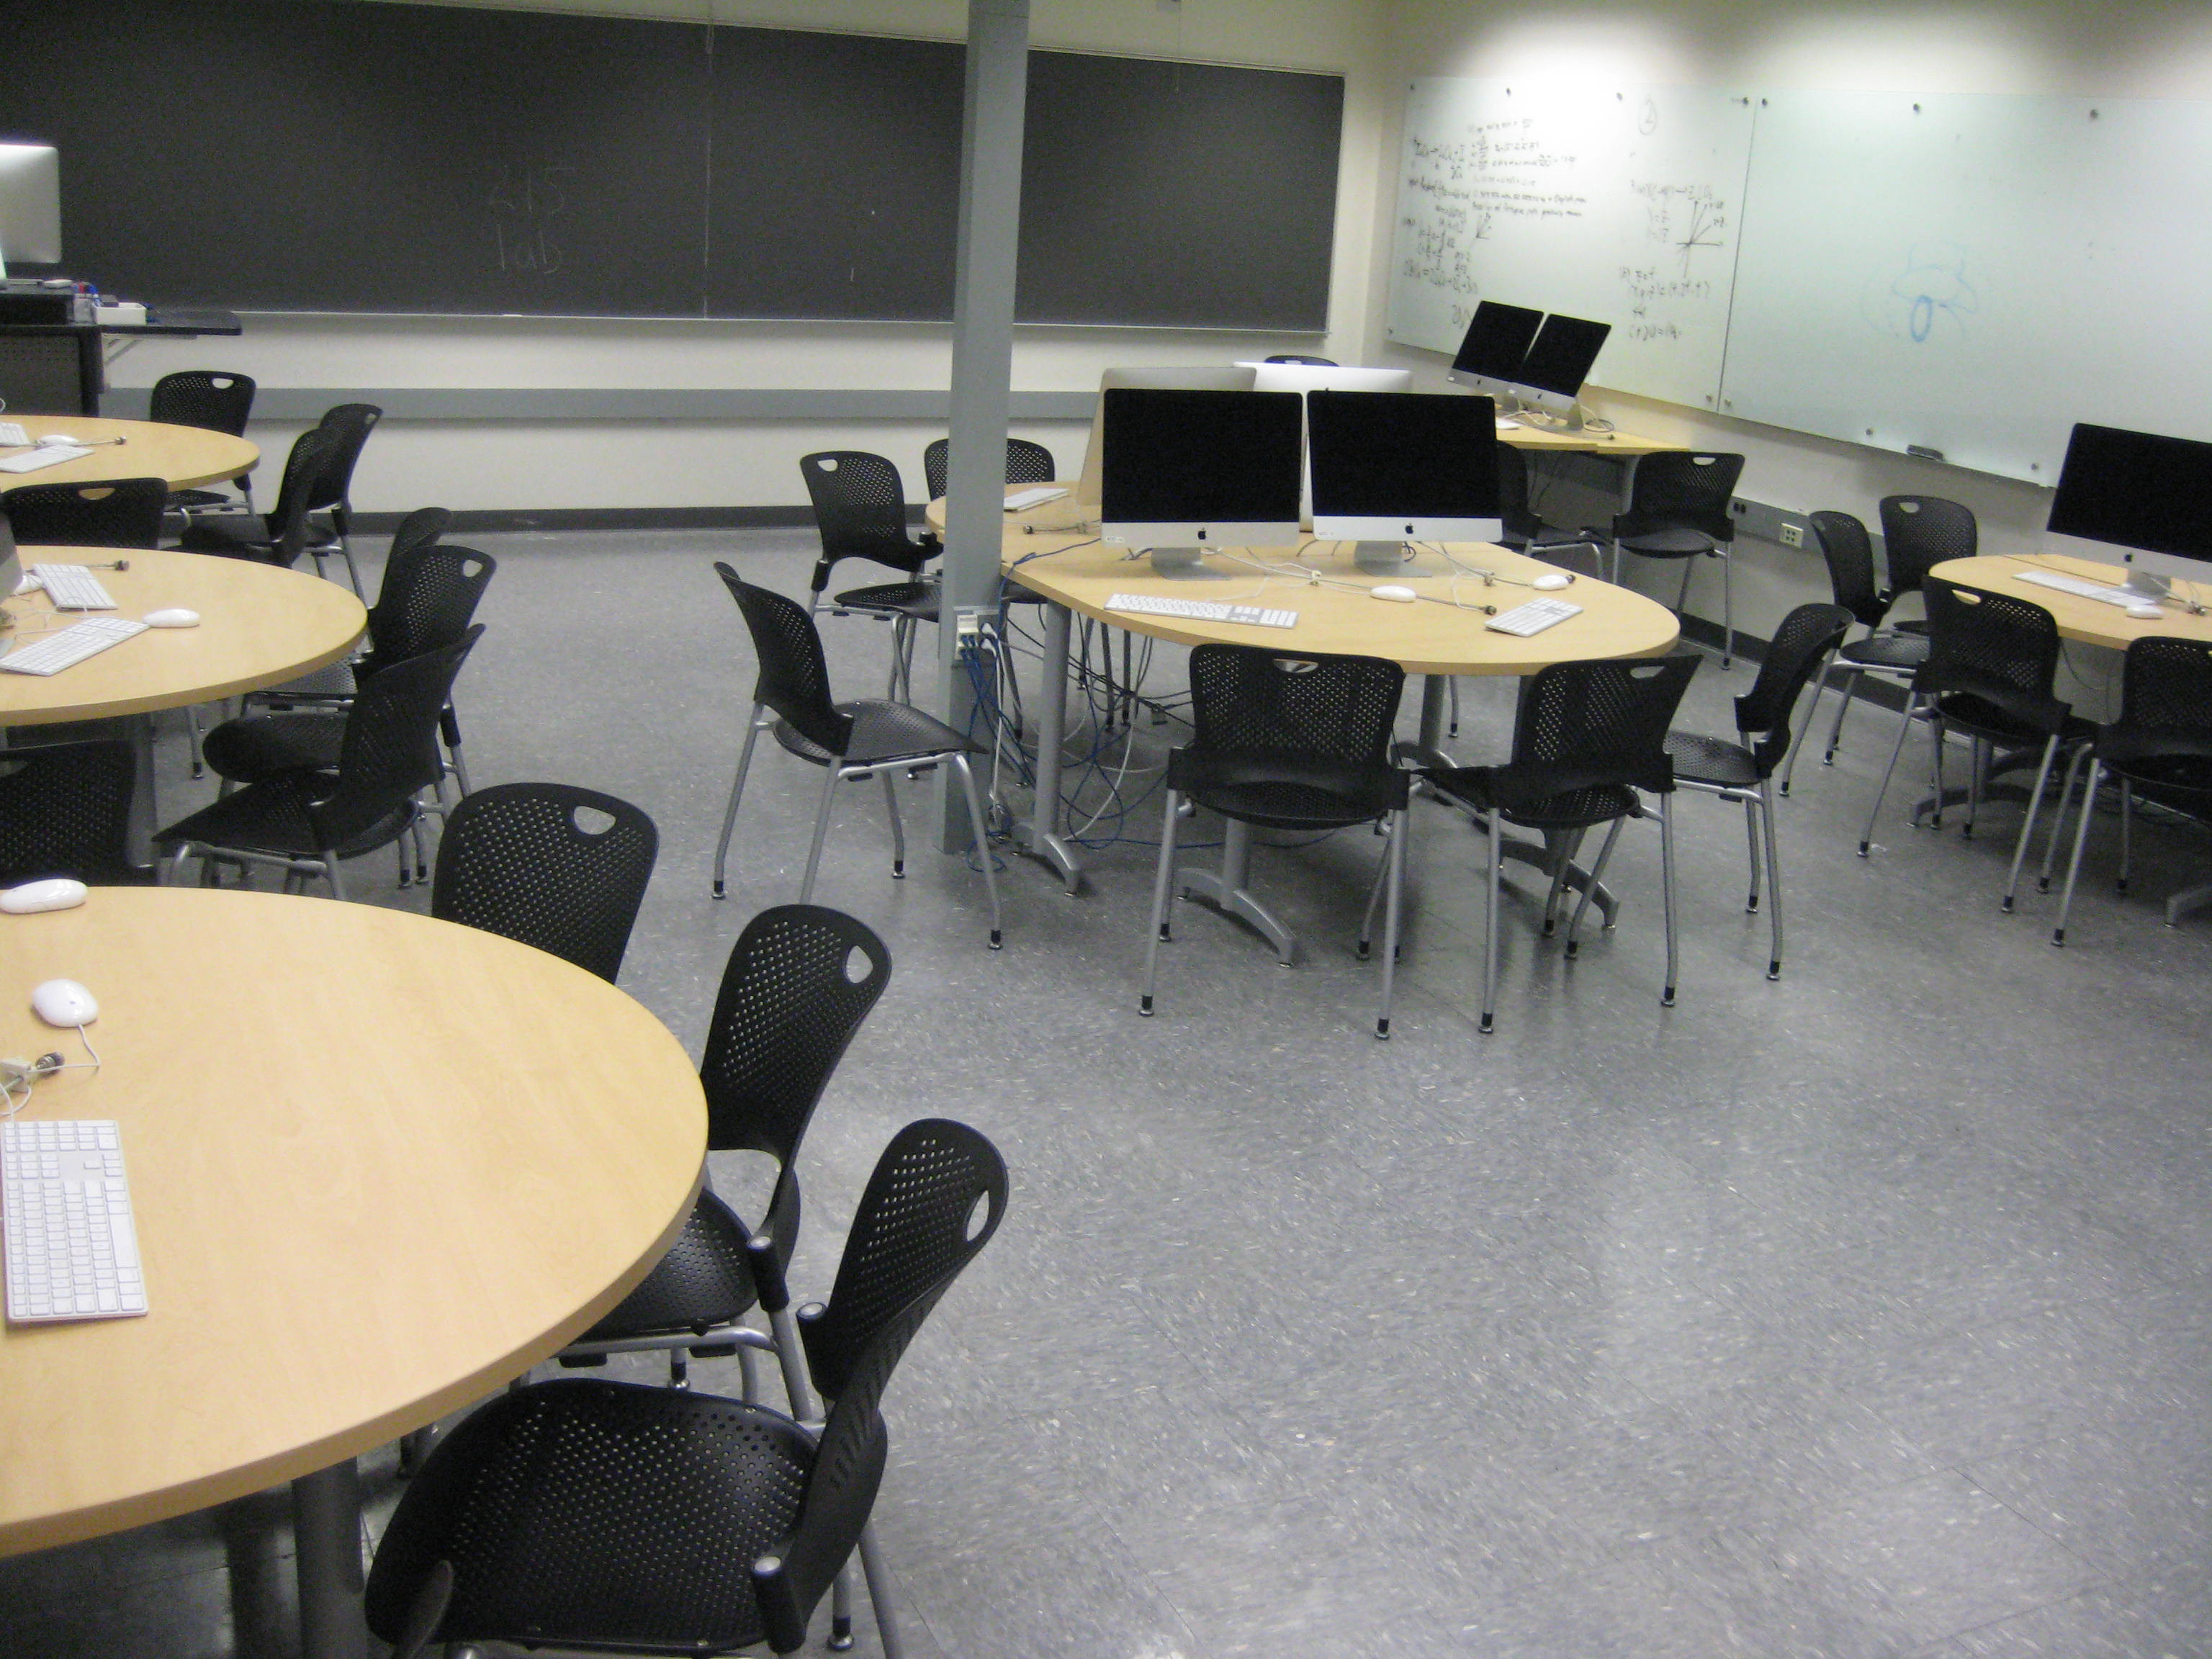 [image of collaborative computer lab]